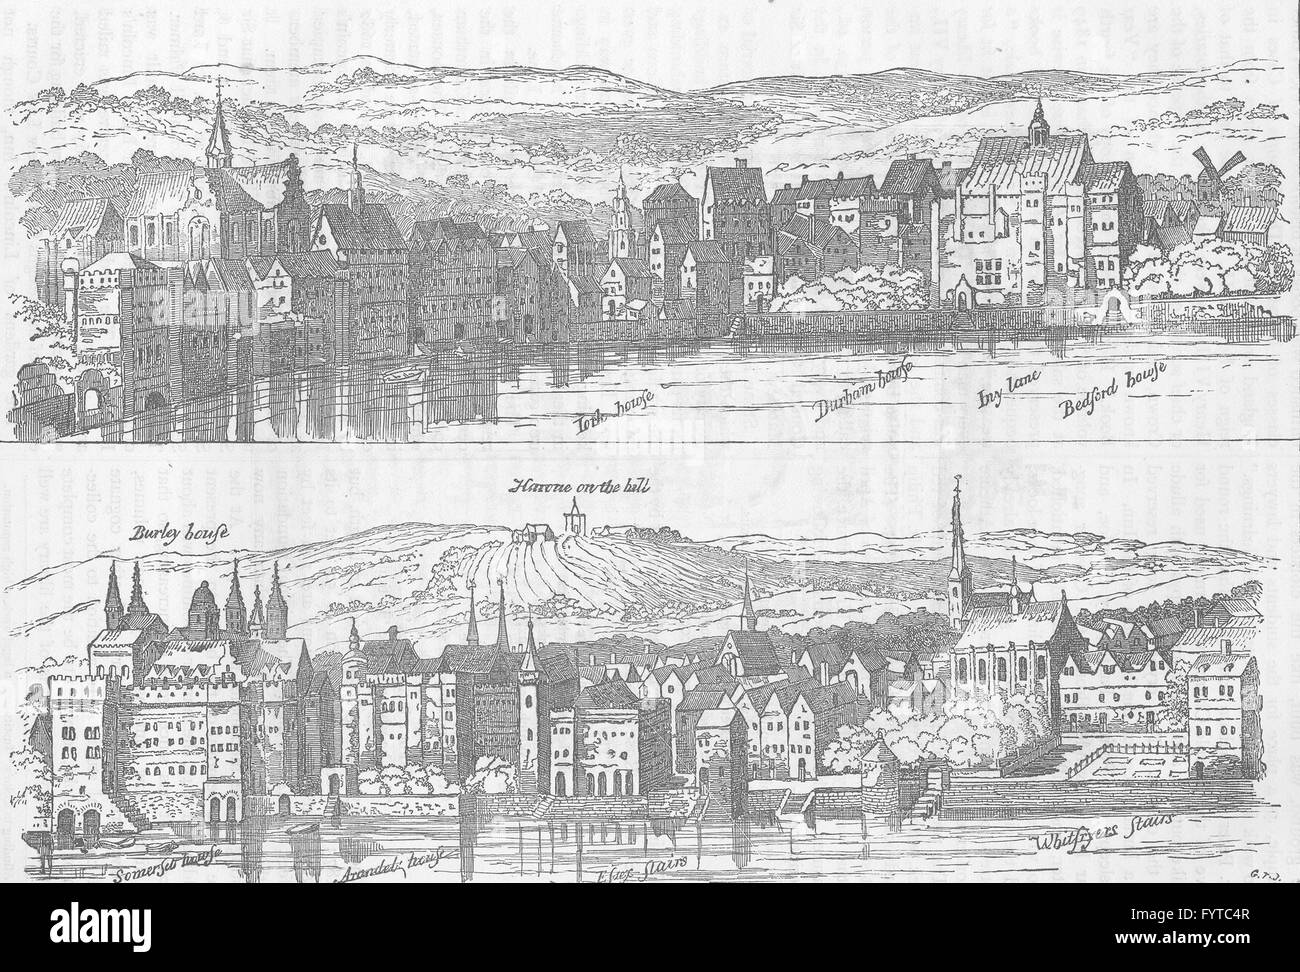 LINCOLN'S INN: The strand, from the Thames, sixteenth century. London, c1880 - Stock Image